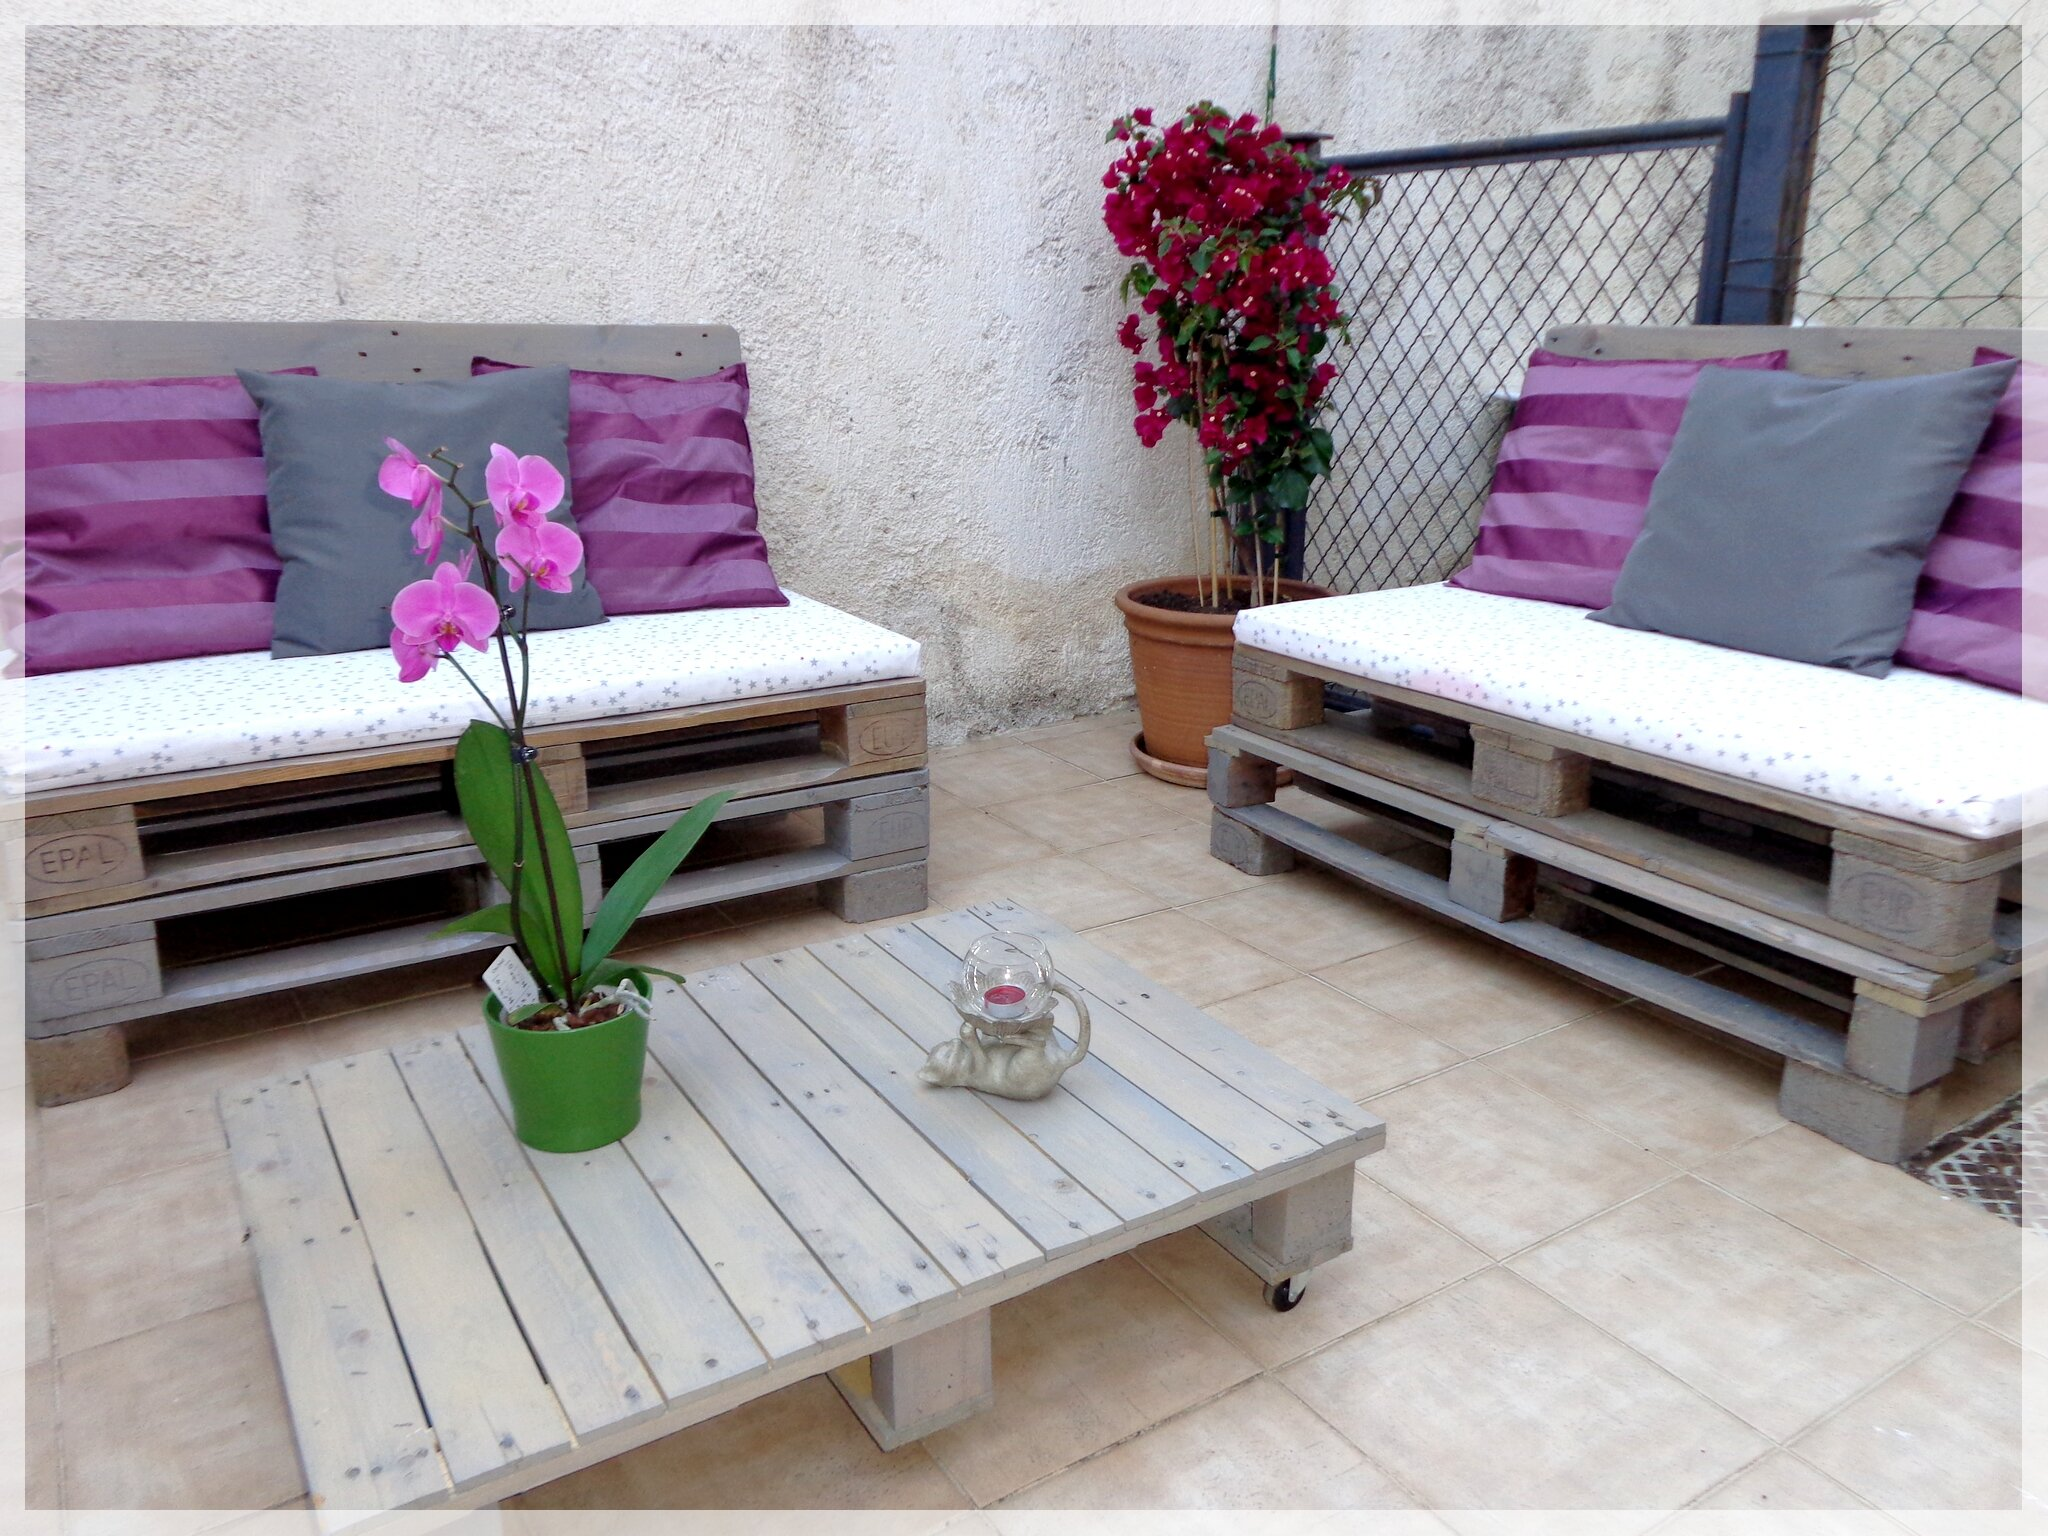 diy salon de jardin la patte de notablueta. Black Bedroom Furniture Sets. Home Design Ideas